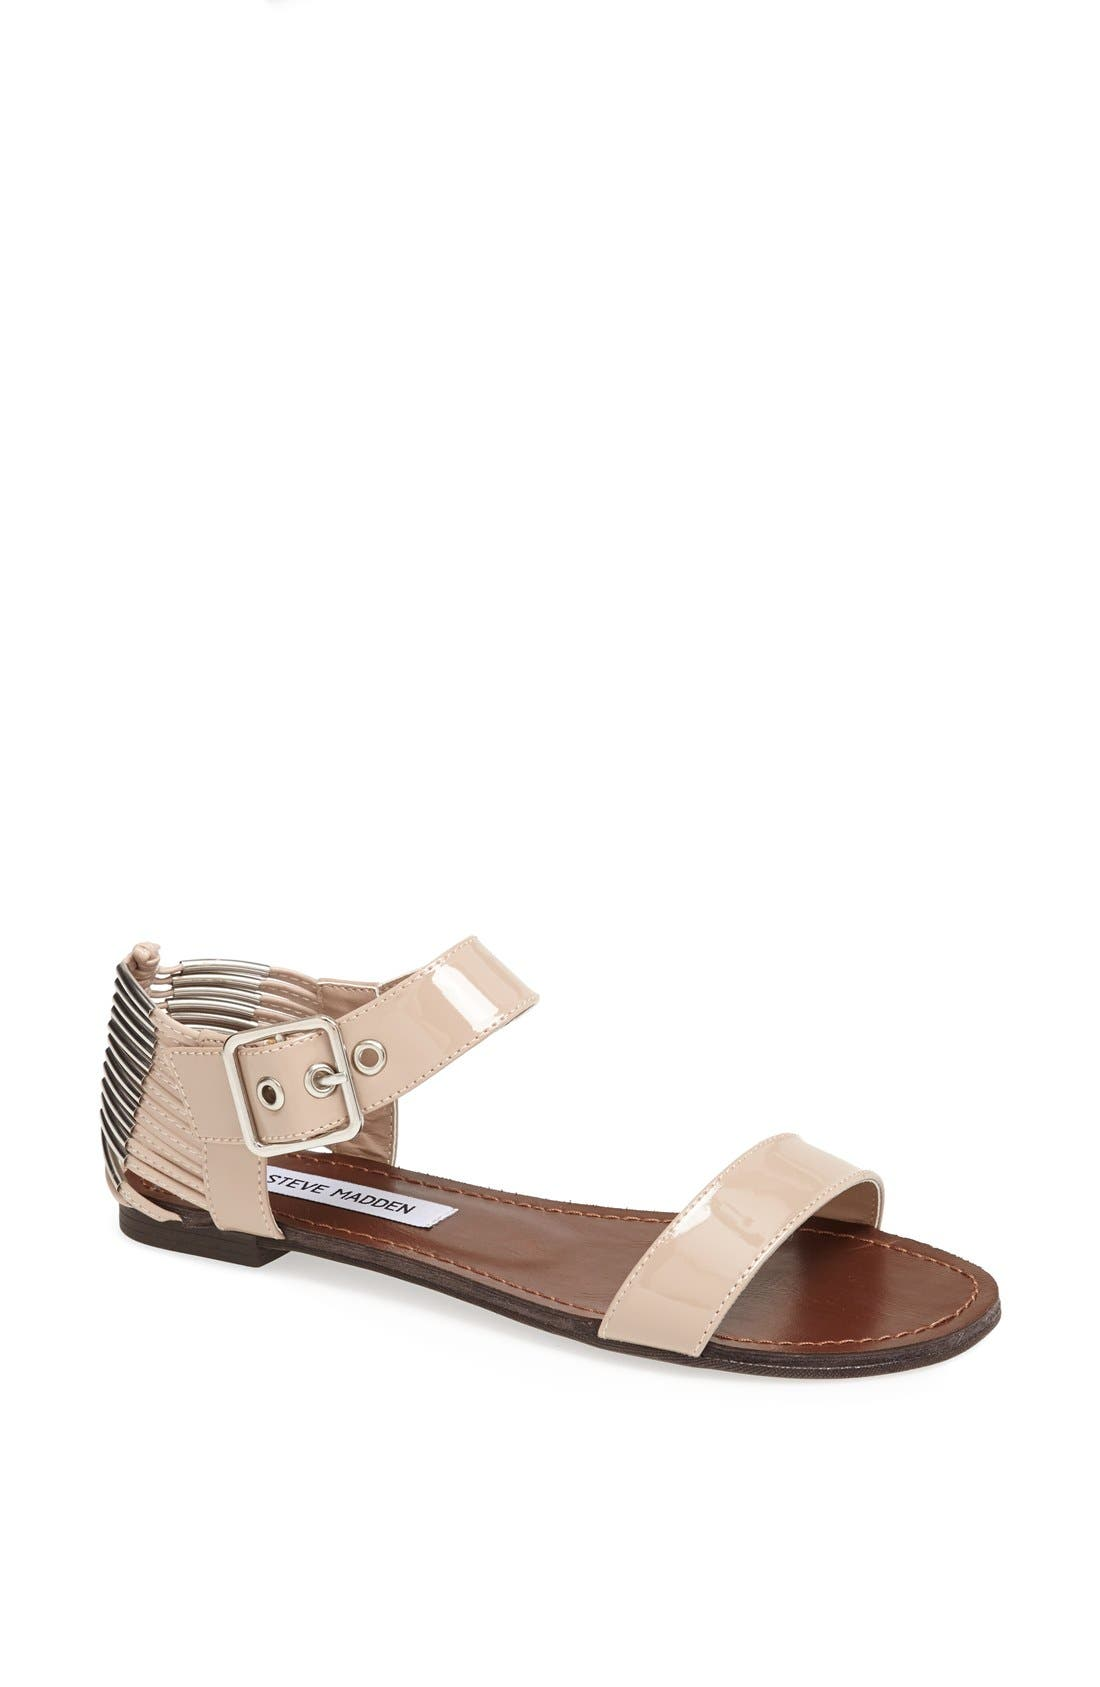 Alternate Image 1 Selected - Steve Madden 'Sincere' Sandal